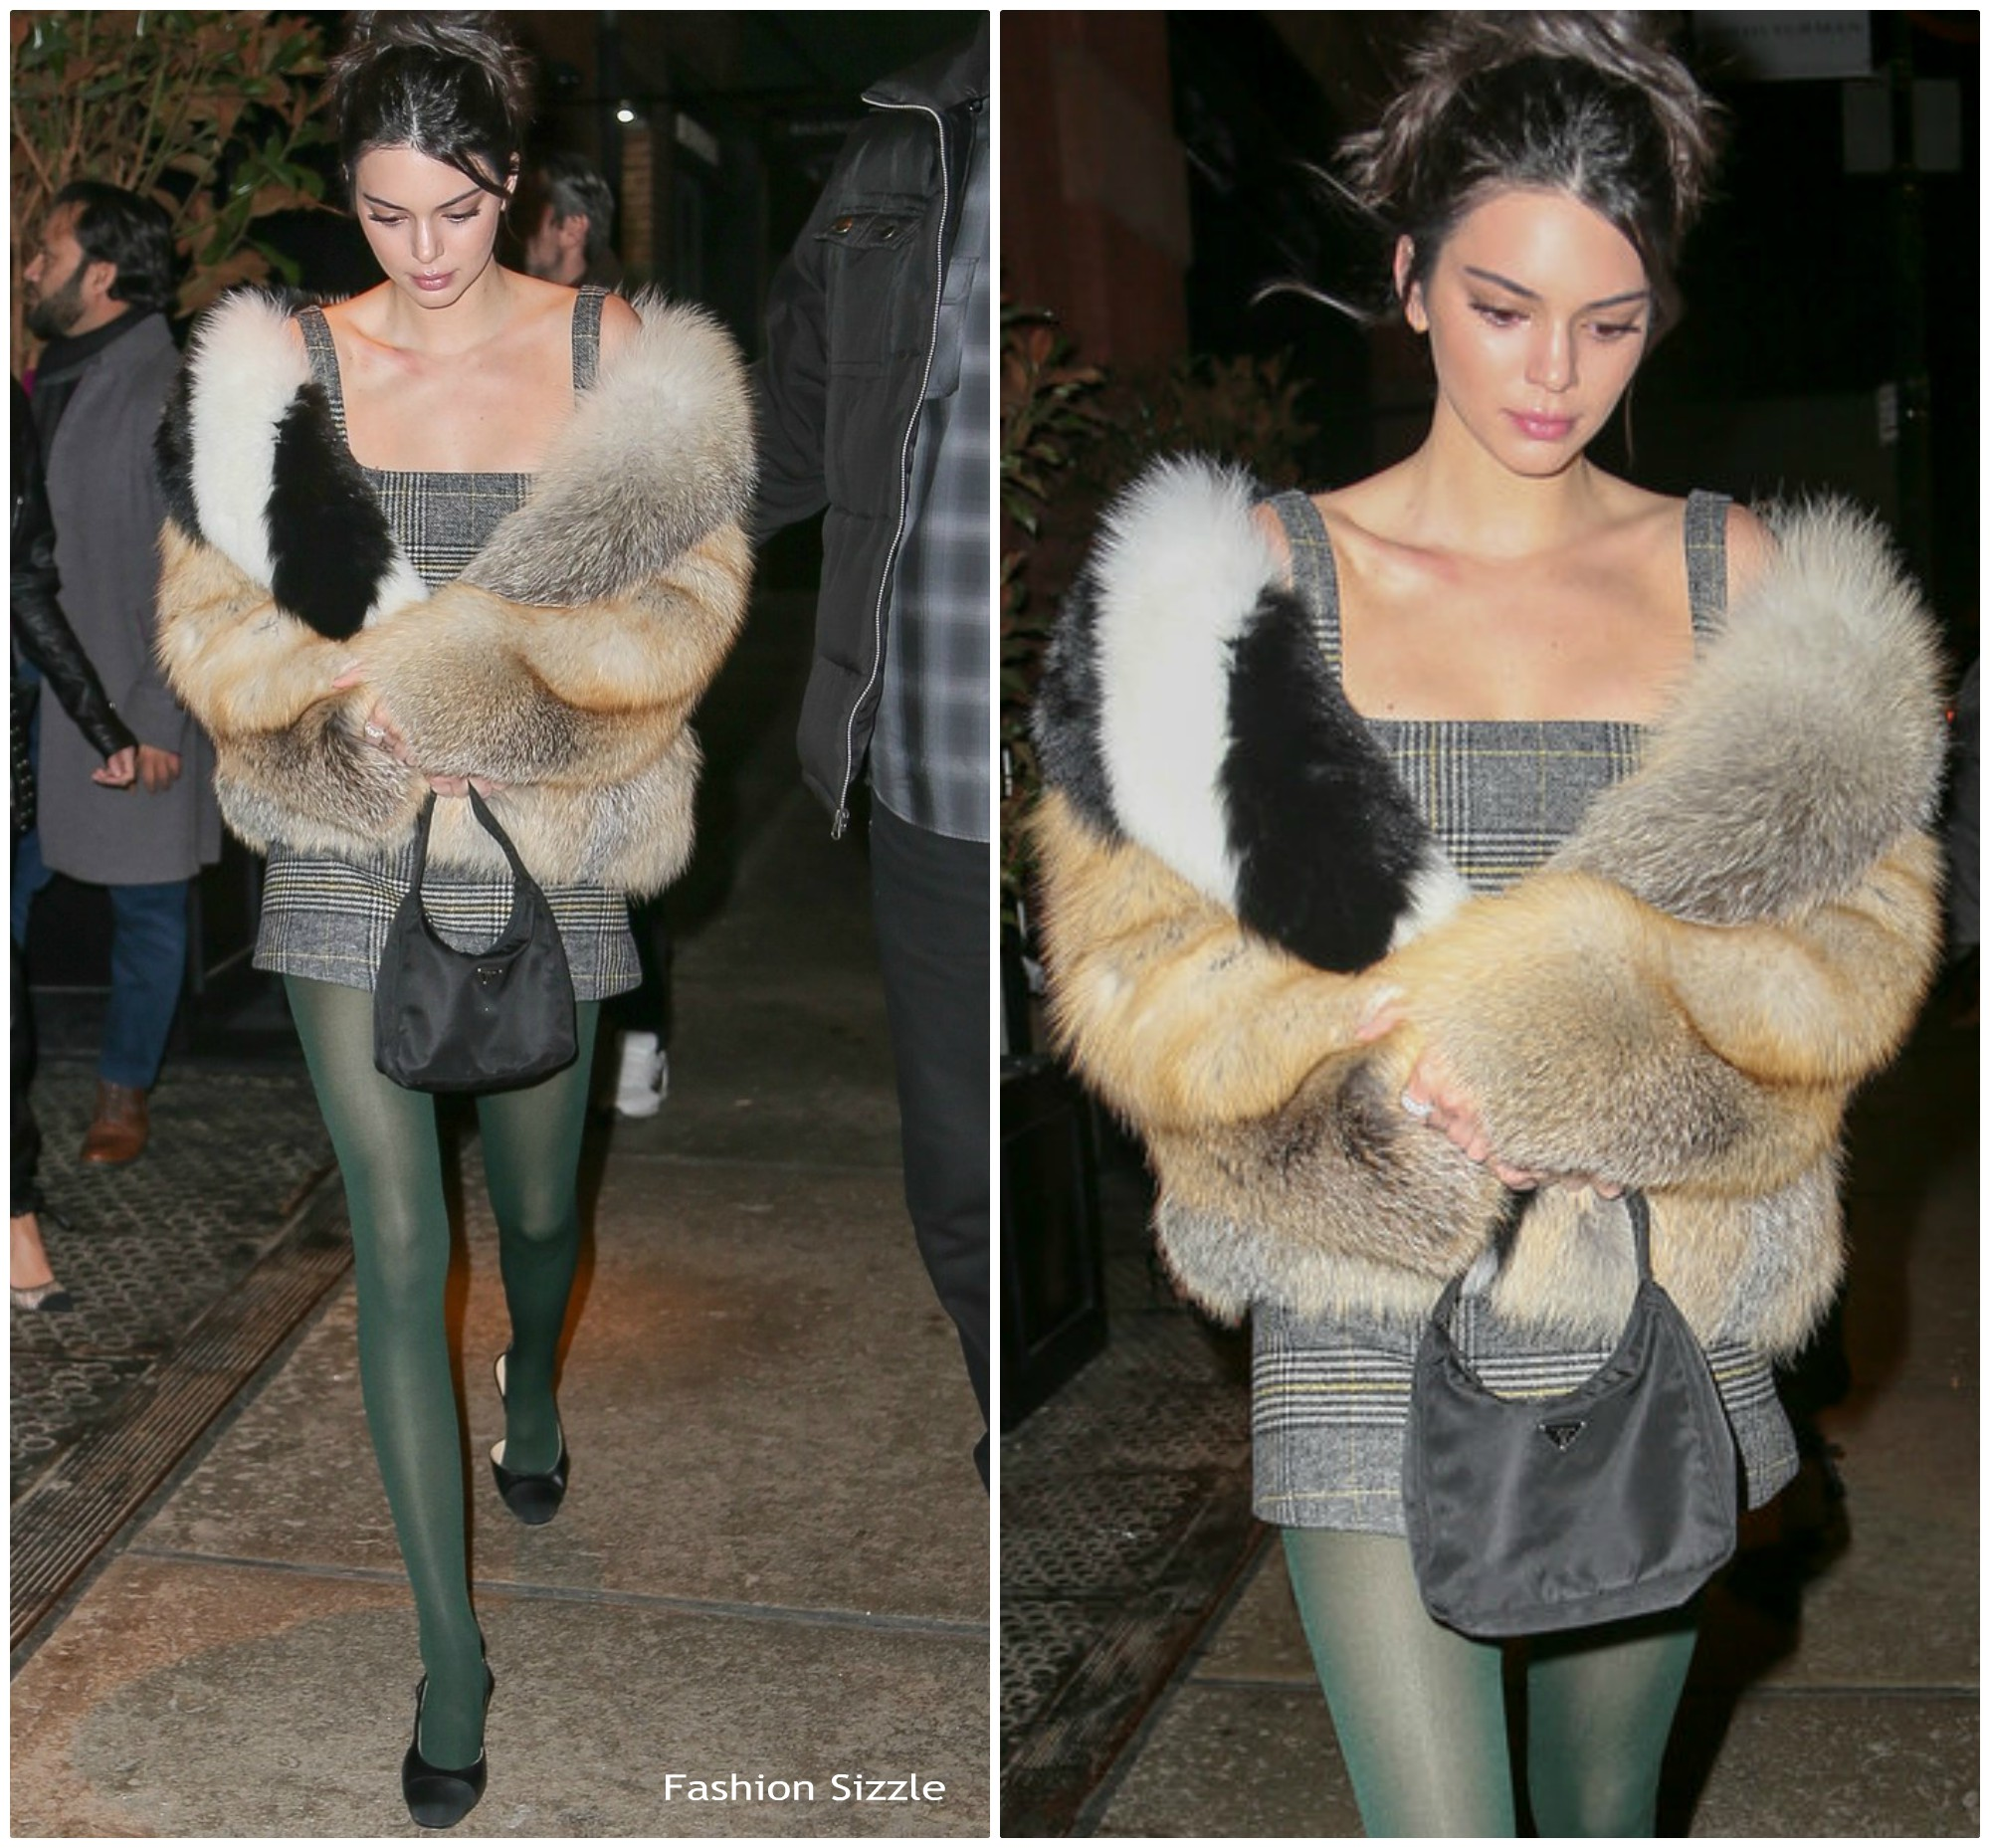 kendall-jenner-in-alexa-chung-out-in-new-york